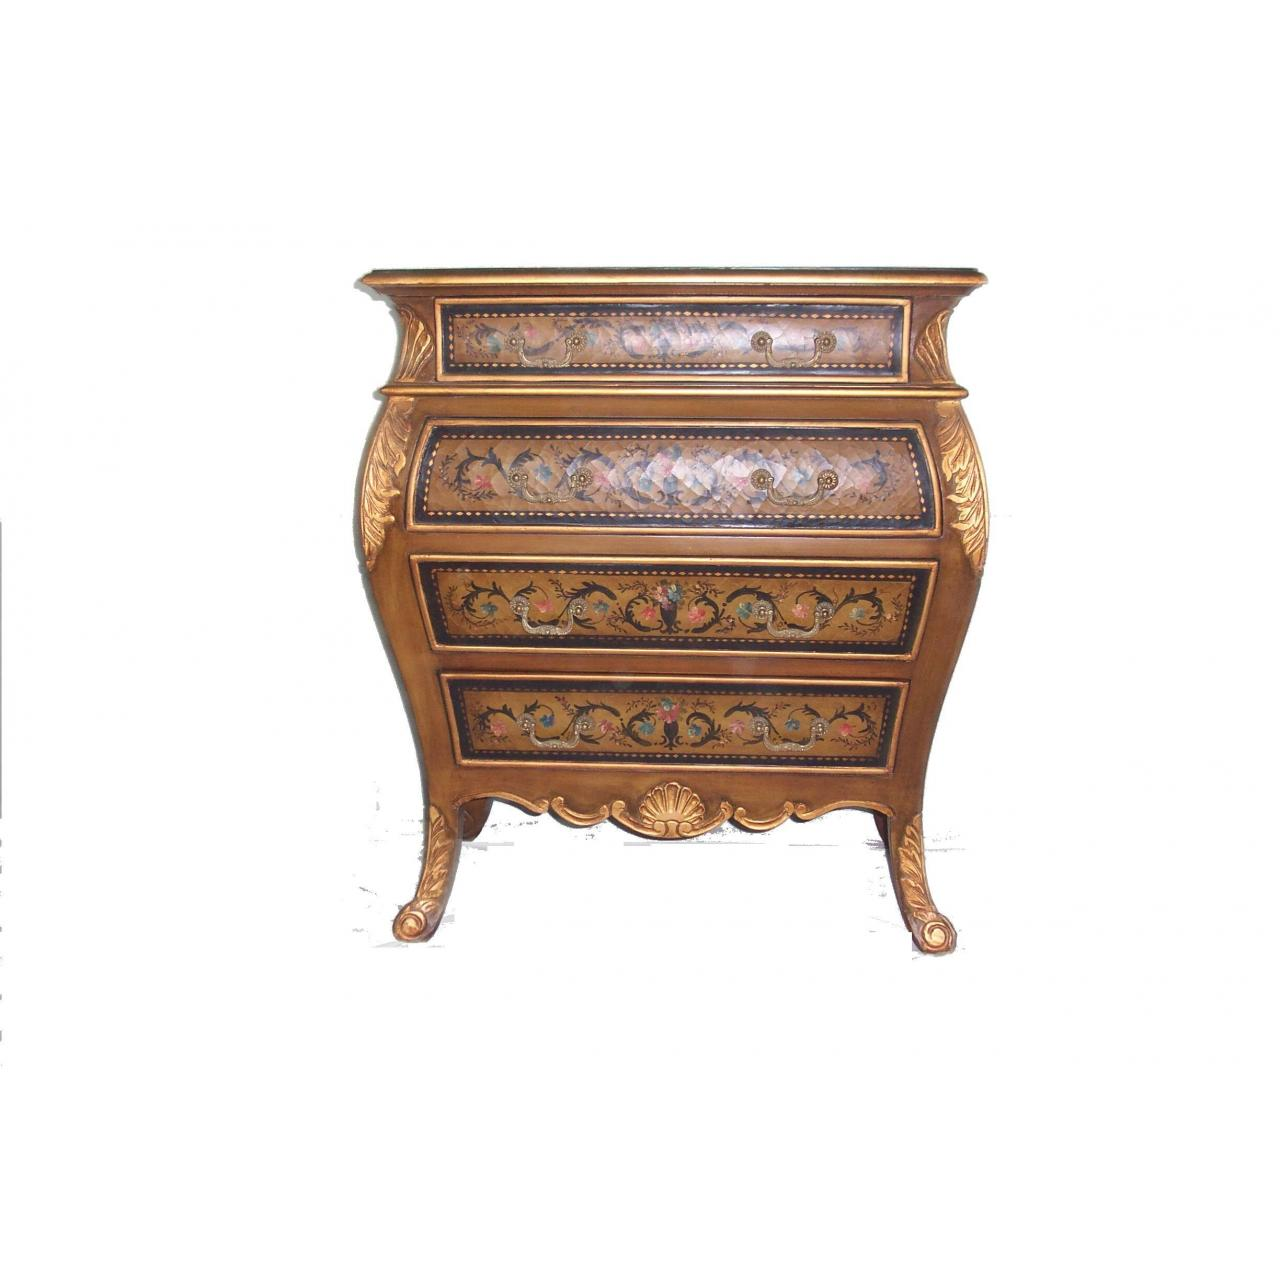 Vintage reproduction wood furniture